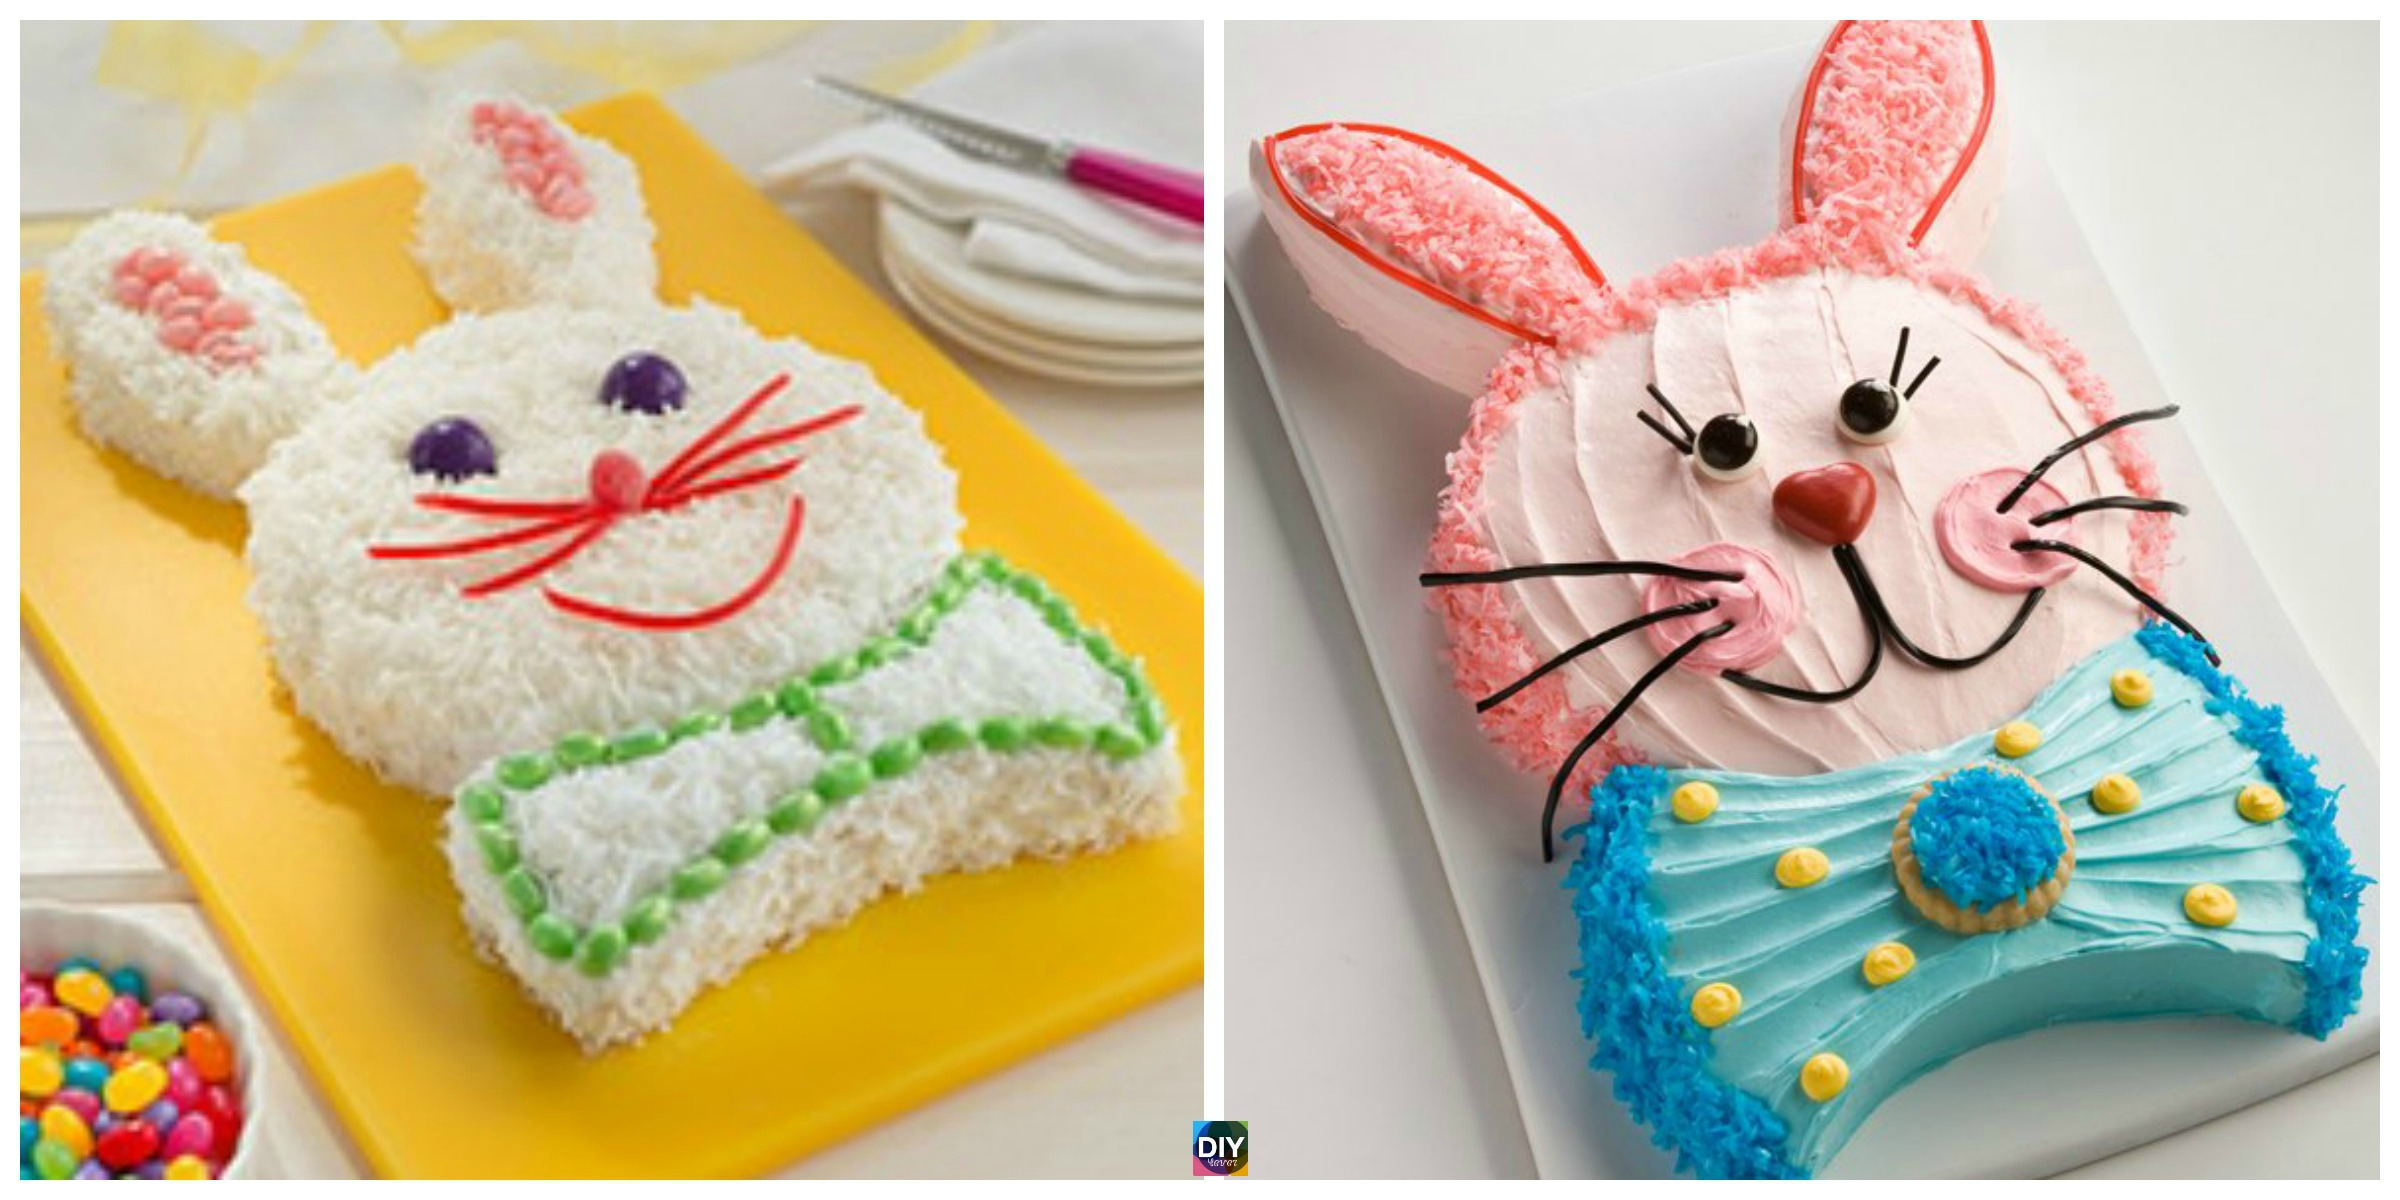 Easy Diy Easter Bunny Cake Tutorial Diy 4 Ever